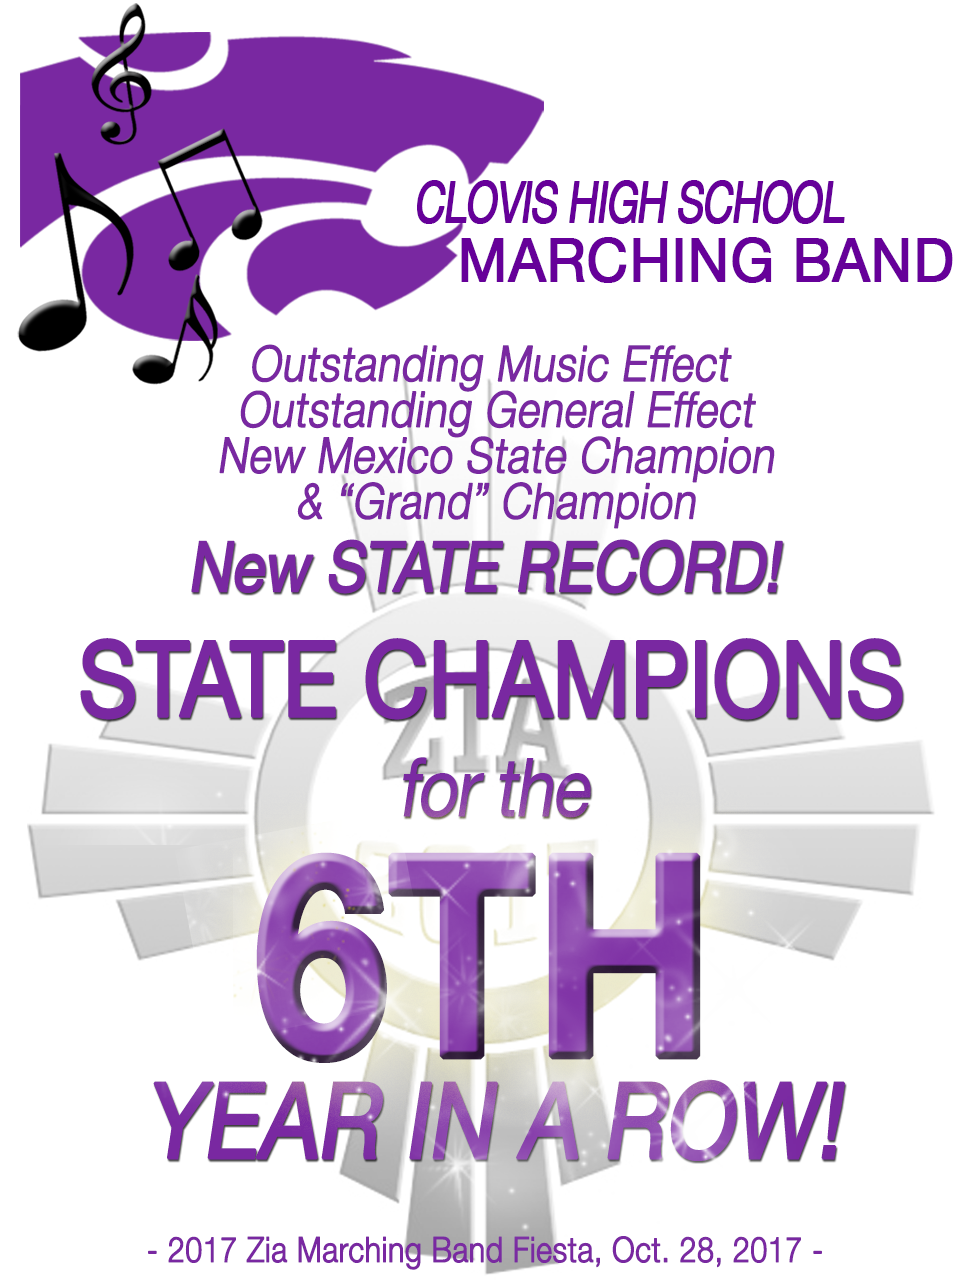 Image announcing CHS Marching Band success at 2017 Zia Festival